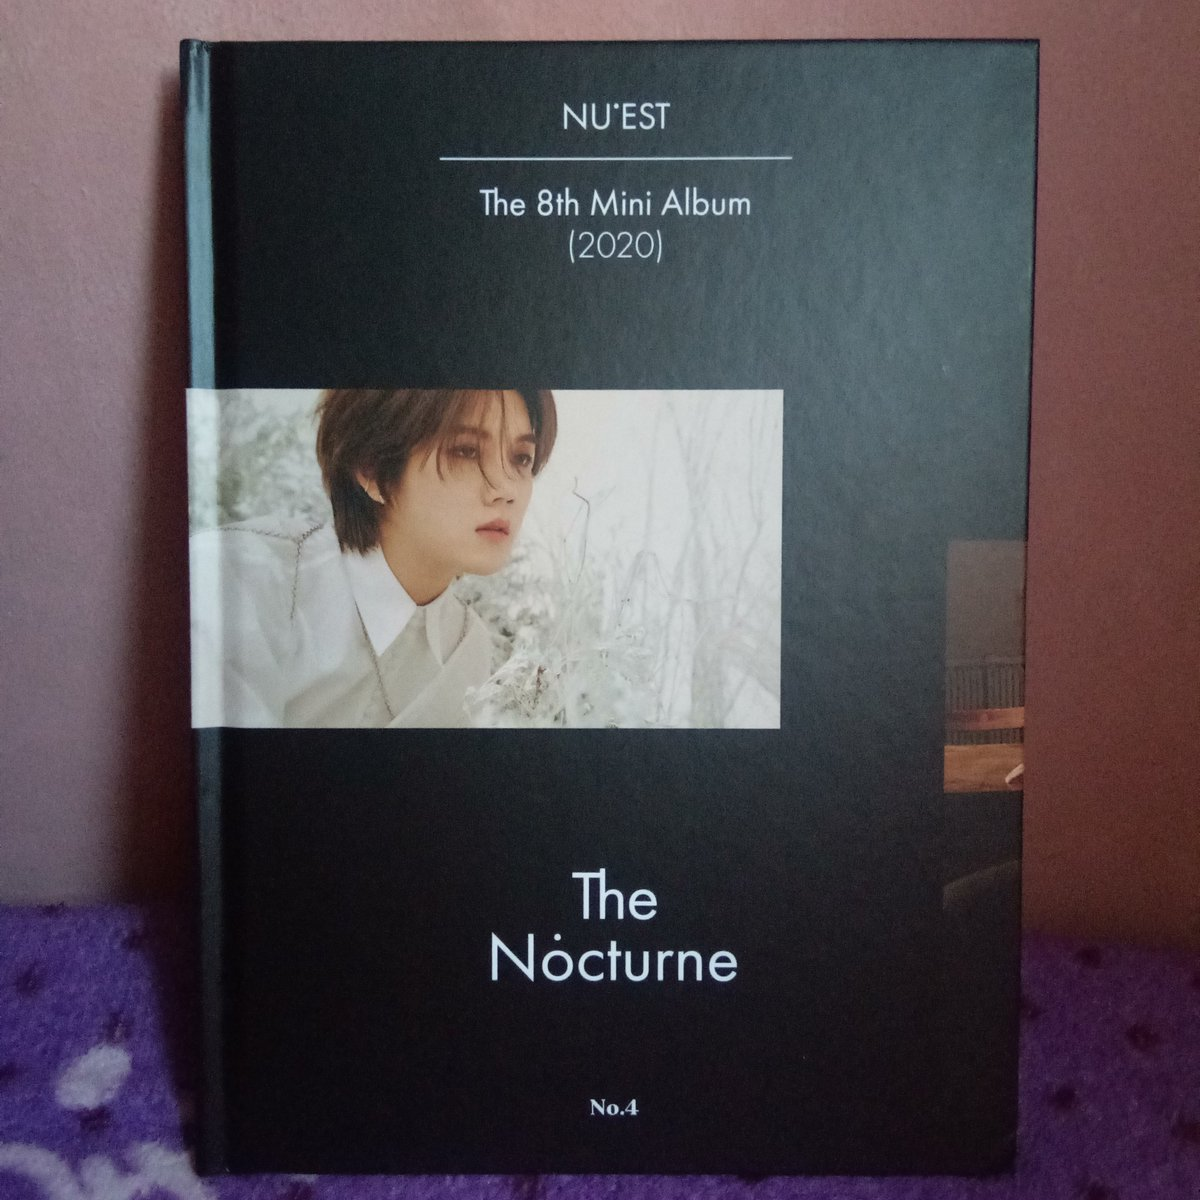 NU'EST The Nocturne Album finally arrived 💓 Totoo nga ang balita, makapal ang bubble wrap 😂 at may paposter pa 😍 Thank you po @FromFansForFans  #NUEST #뉴이스트 #The_Nocturne #Im_in_Trouble https://t.co/4ggt87m5bZ